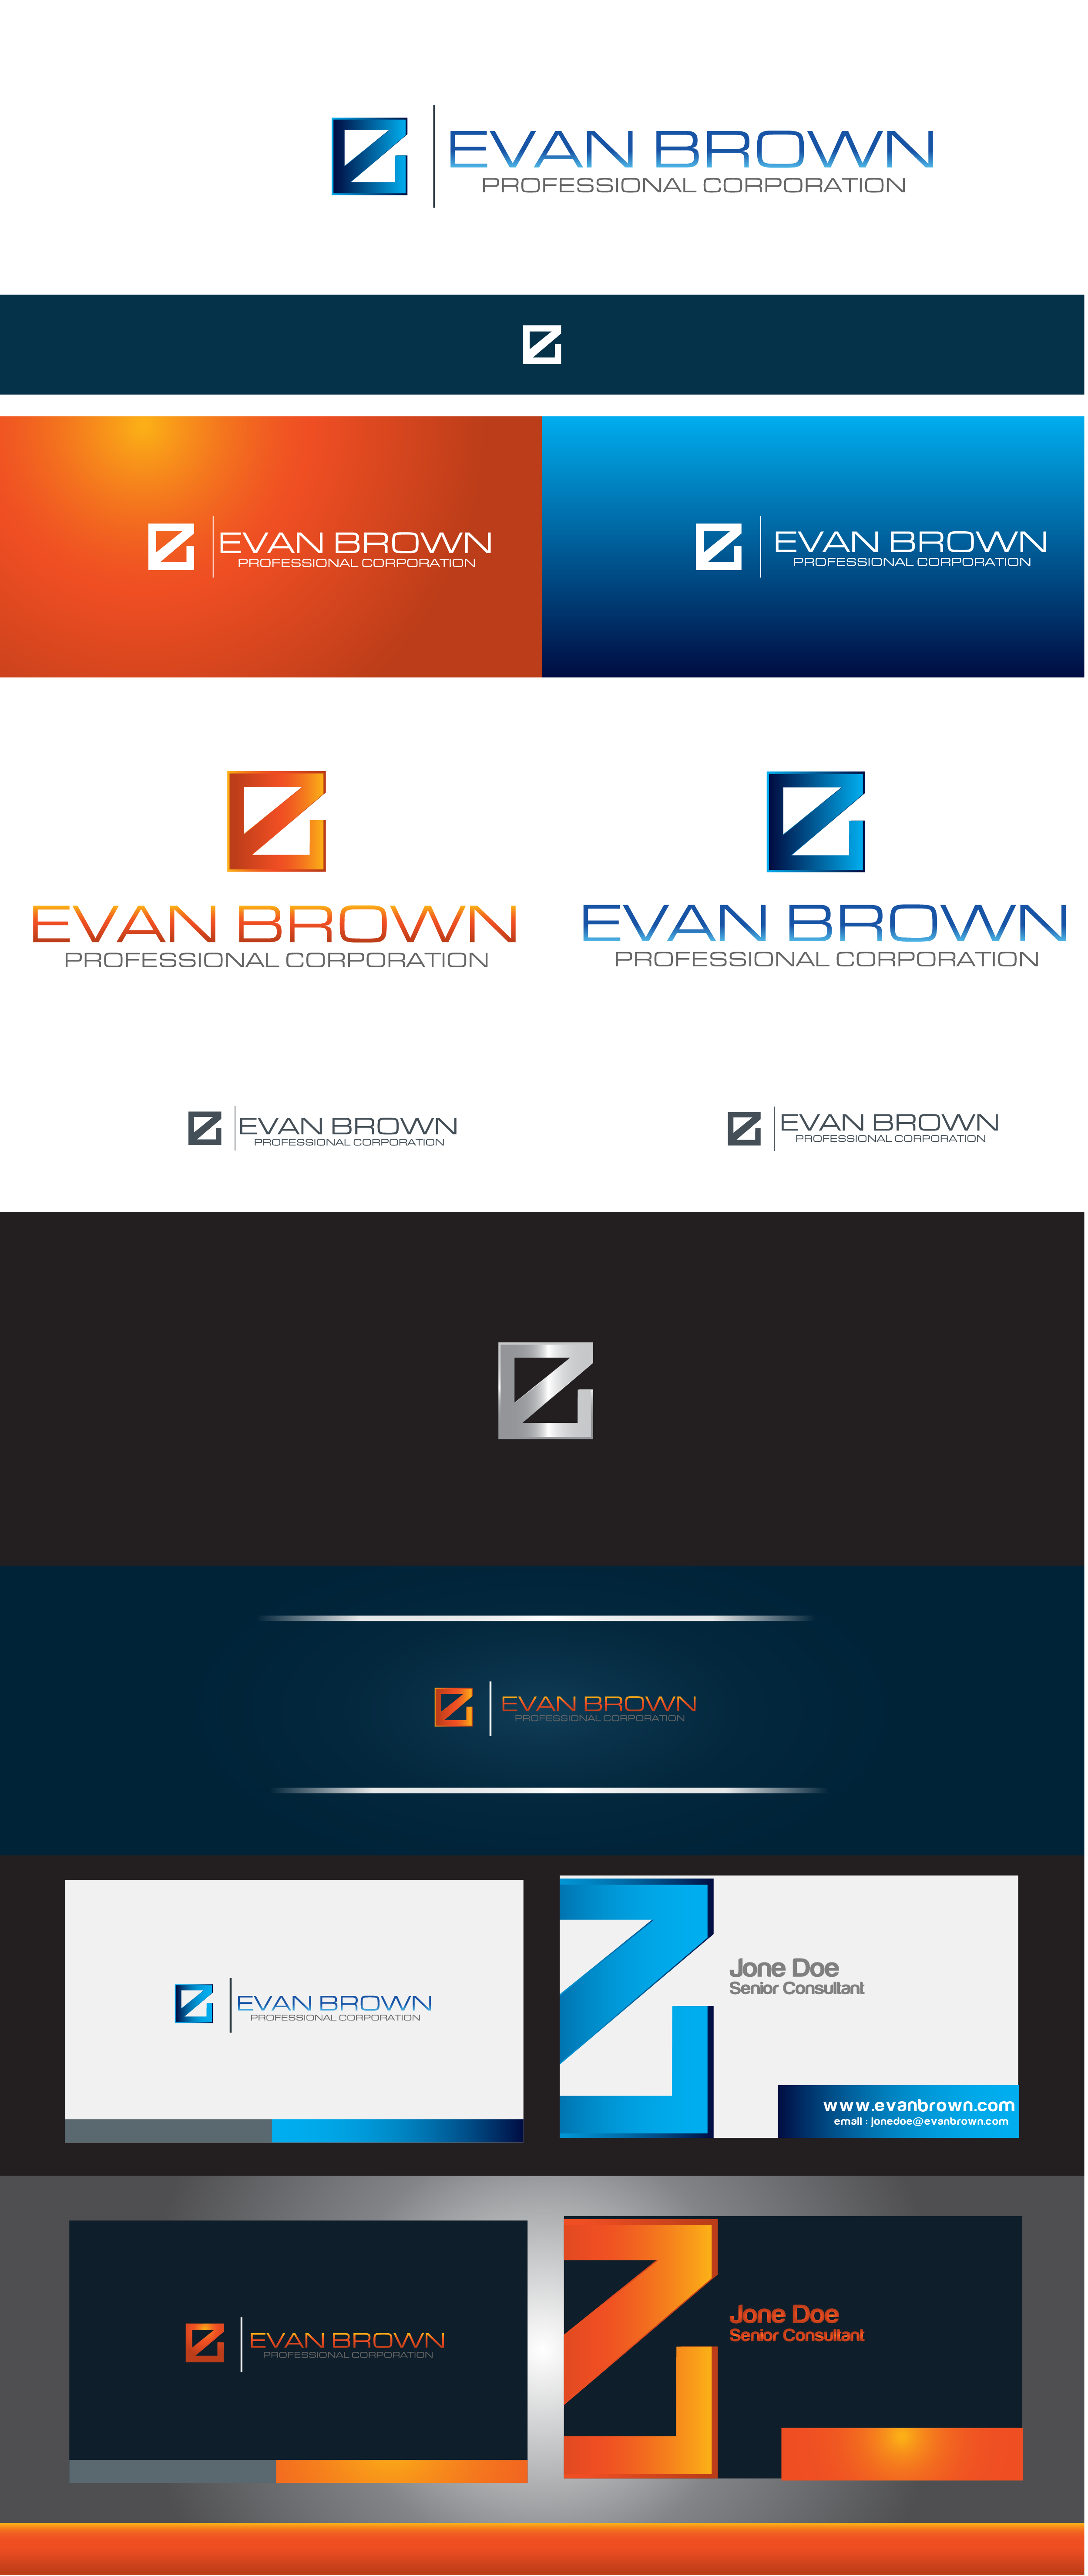 Logo Design by Private User - Entry No. 109 in the Logo Design Contest Inspiring Logo Design for Evan Brown Professional Corporation.